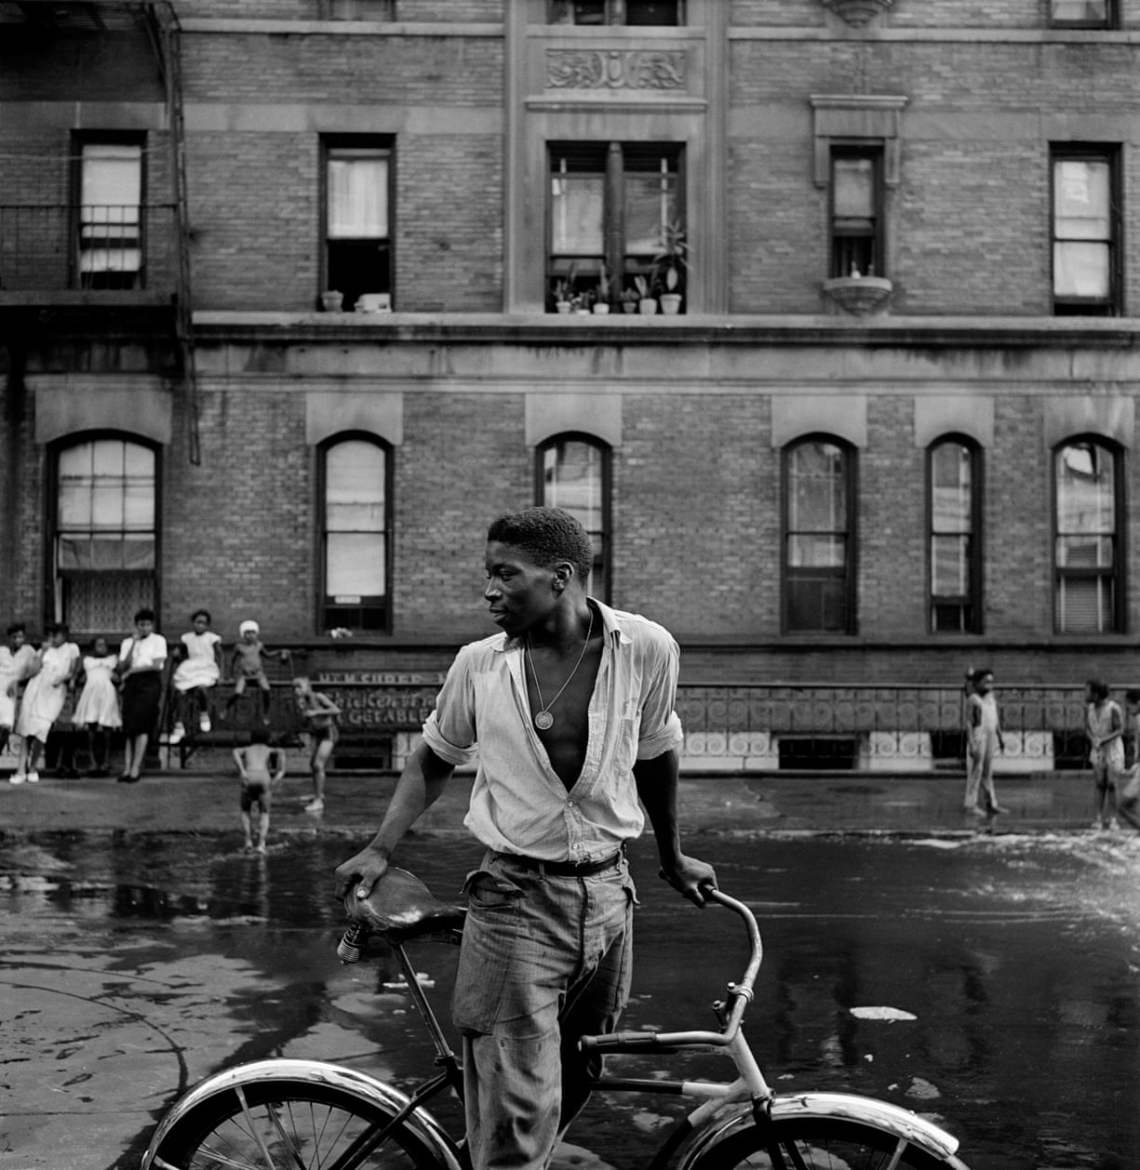 Harlem New York 1948